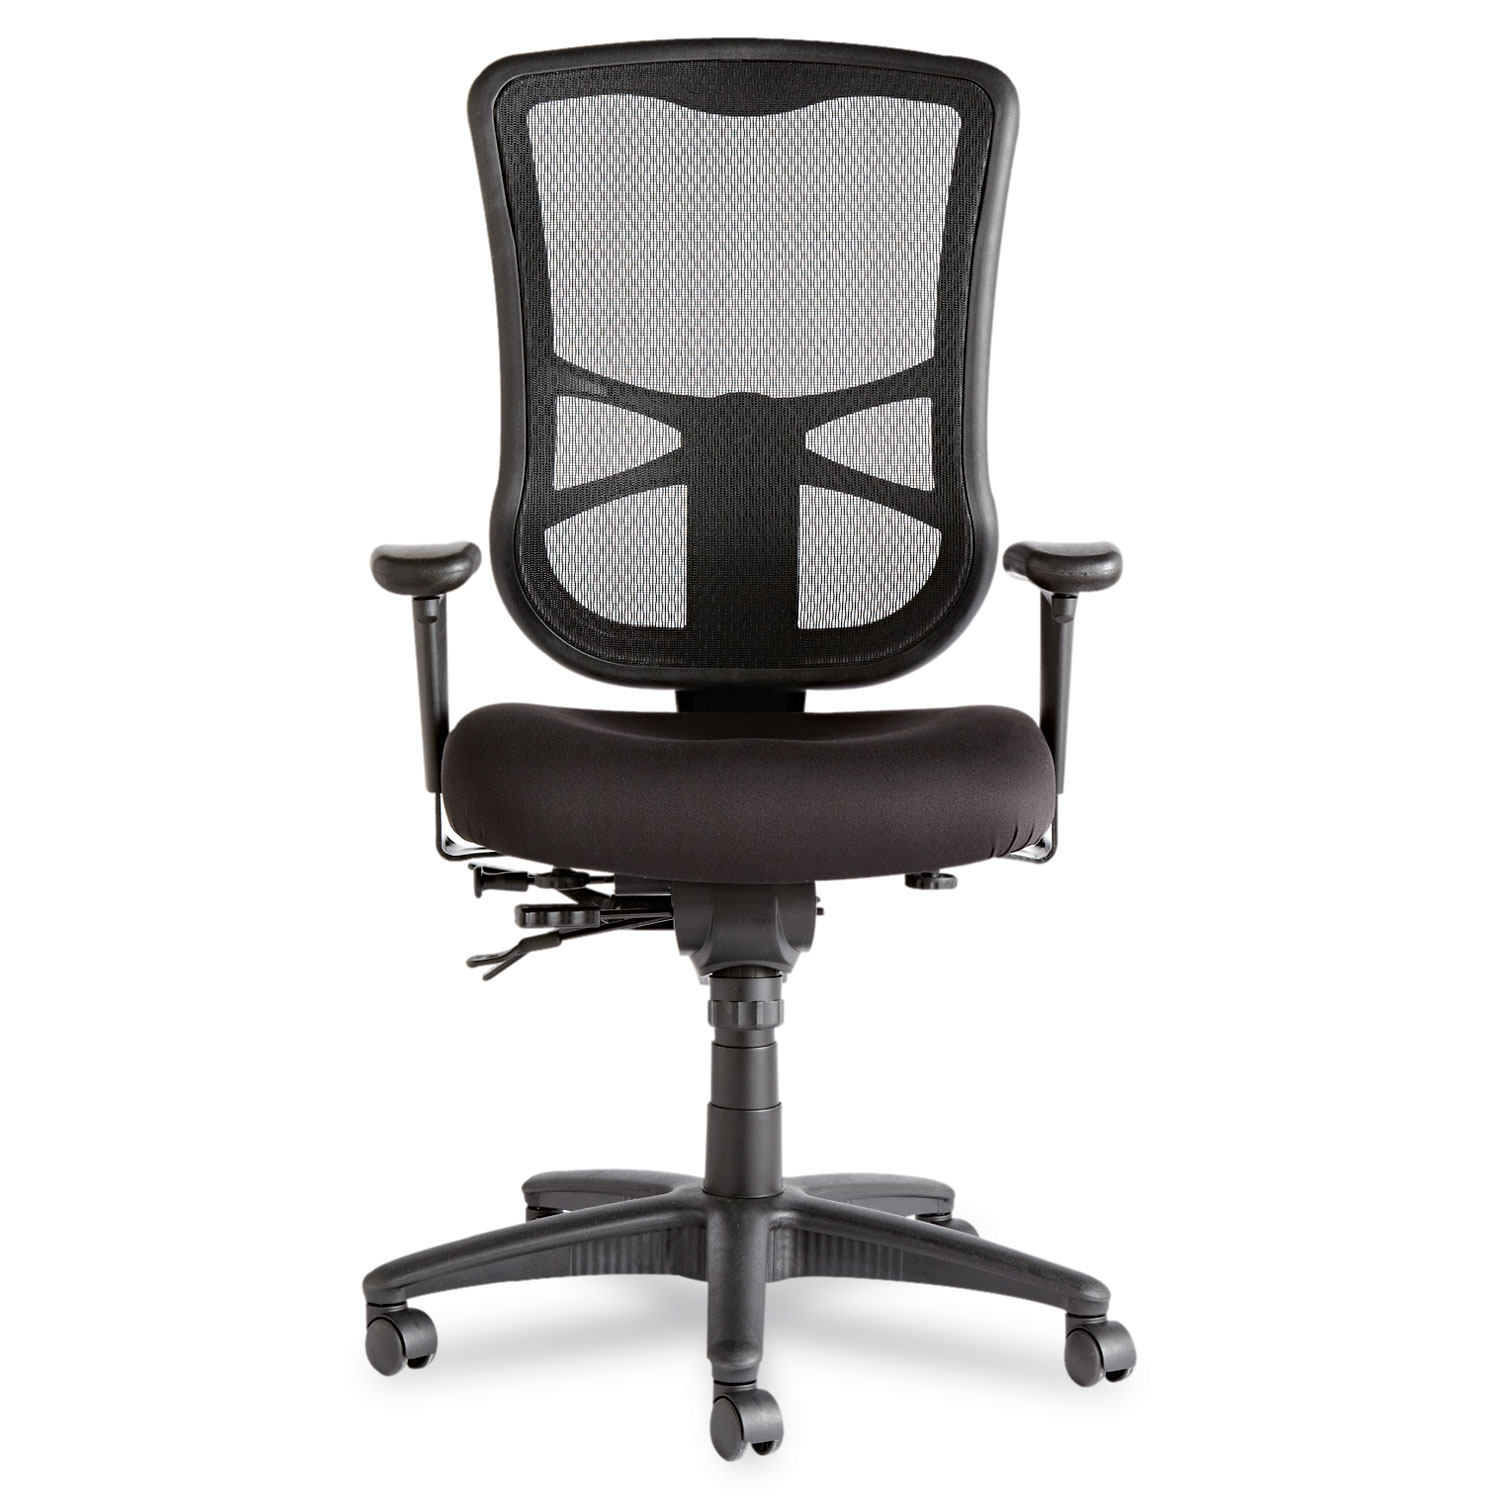 Alera Elusion Series Mesh High Back Multifunction Chair, Black